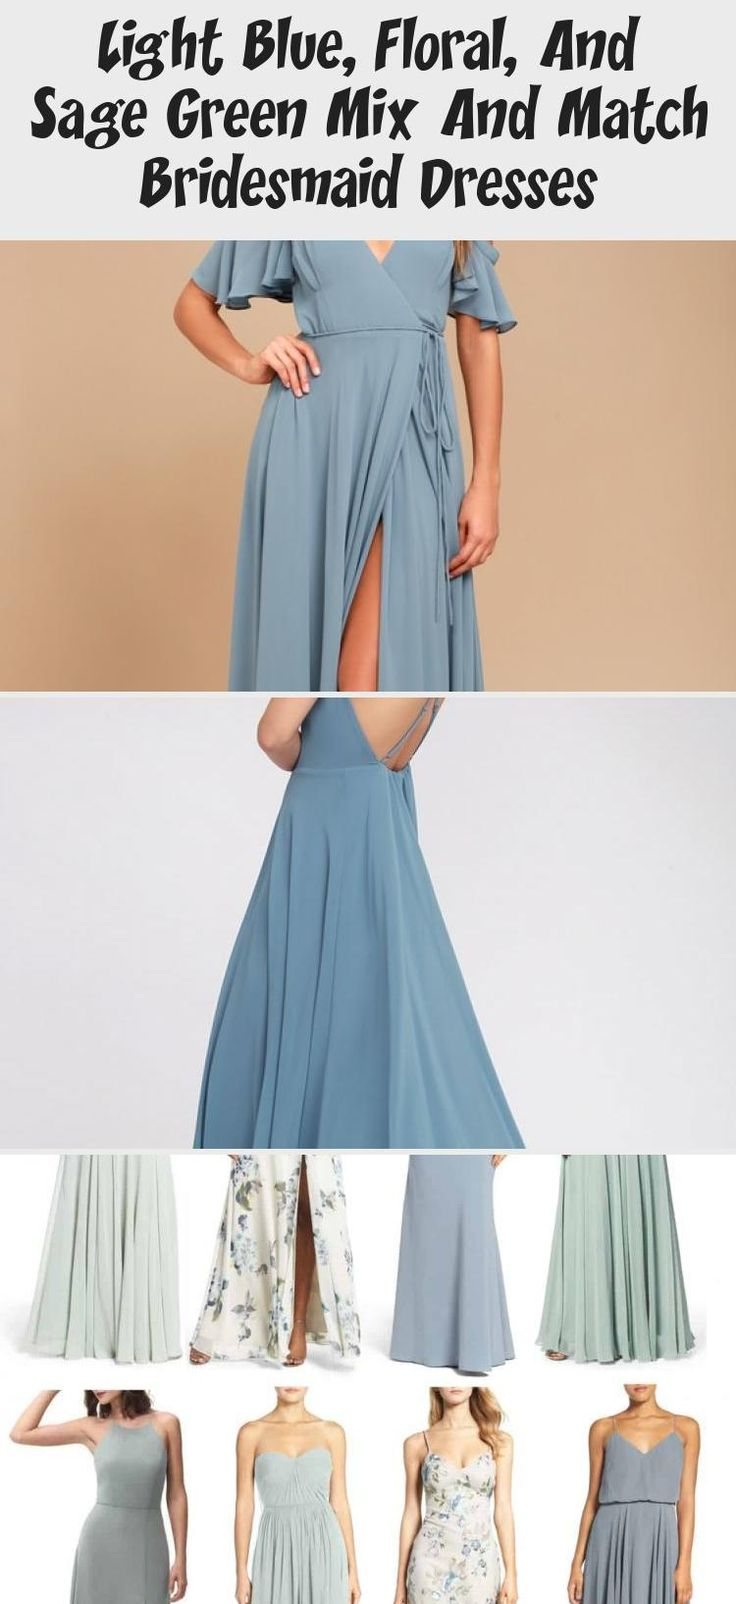 Blue floral and mist sage green mismatched bridesmaid dresses by Jenny Yoo #PinkBridesmaidDresses #BridesmaidDressesBeach #MermaidBridesmaidDresses #GoldBridesmaidDresses #BridesmaidDressesIndian